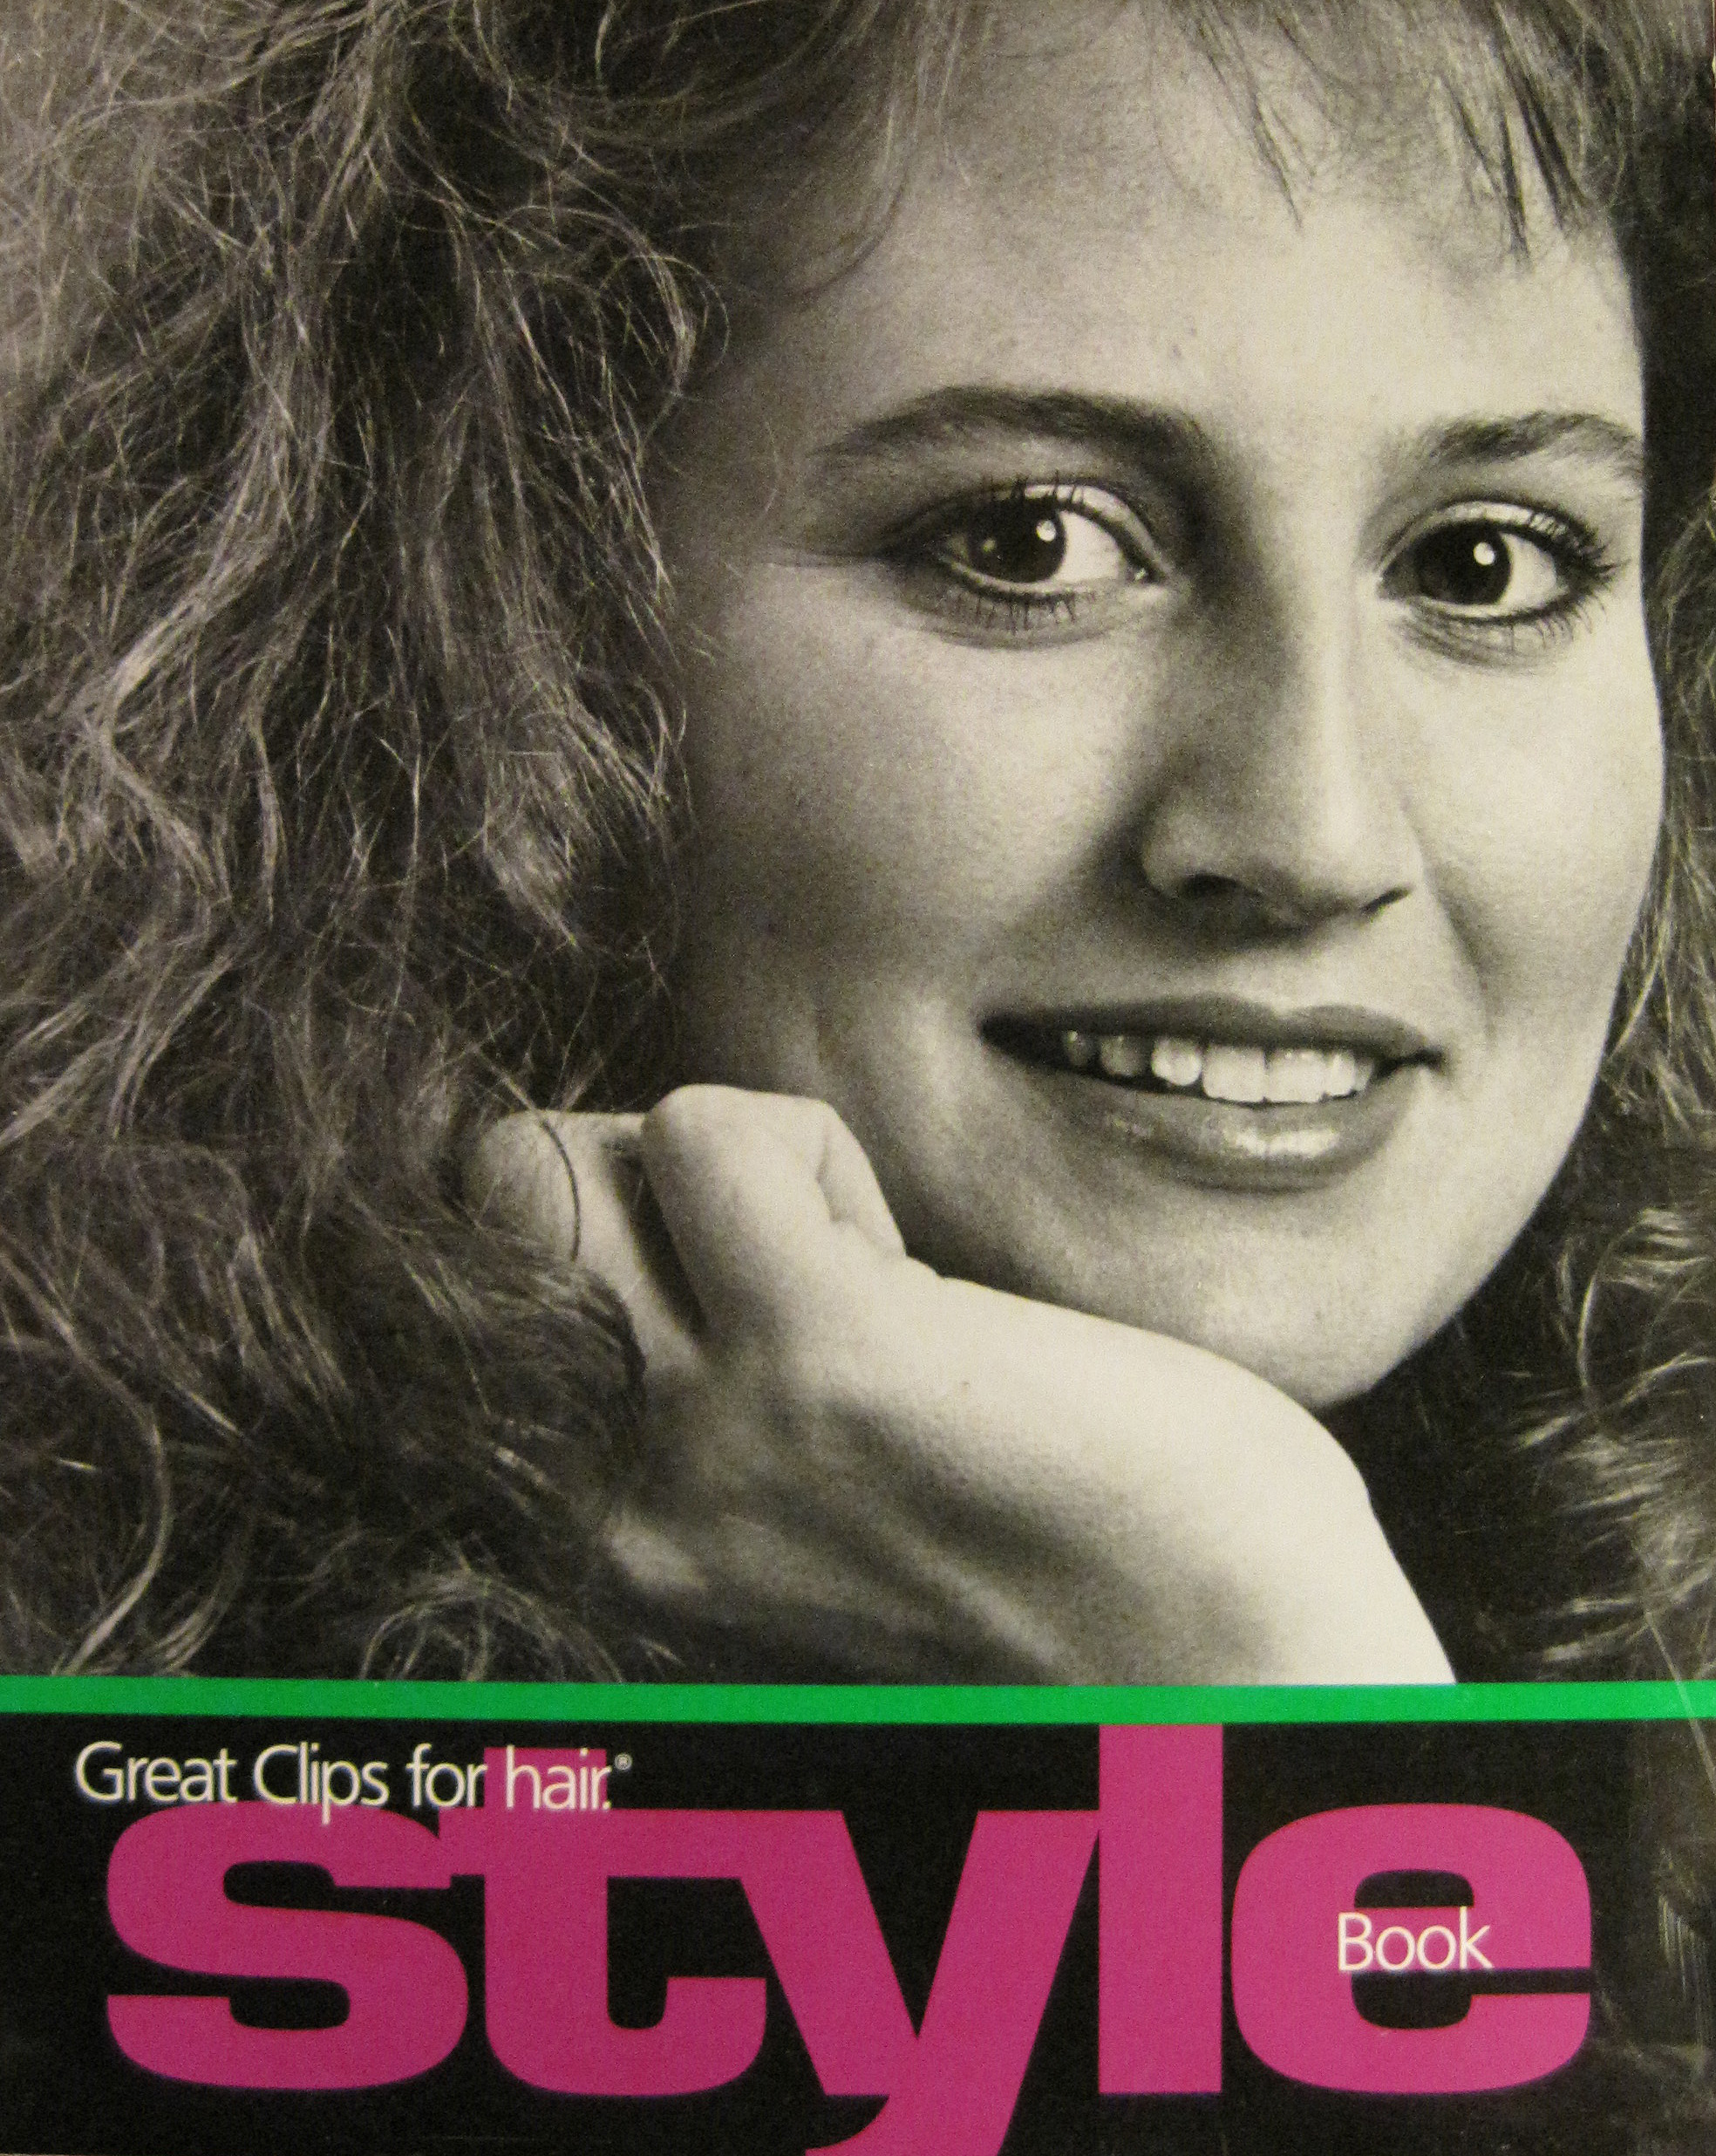 Great Clips style book cover